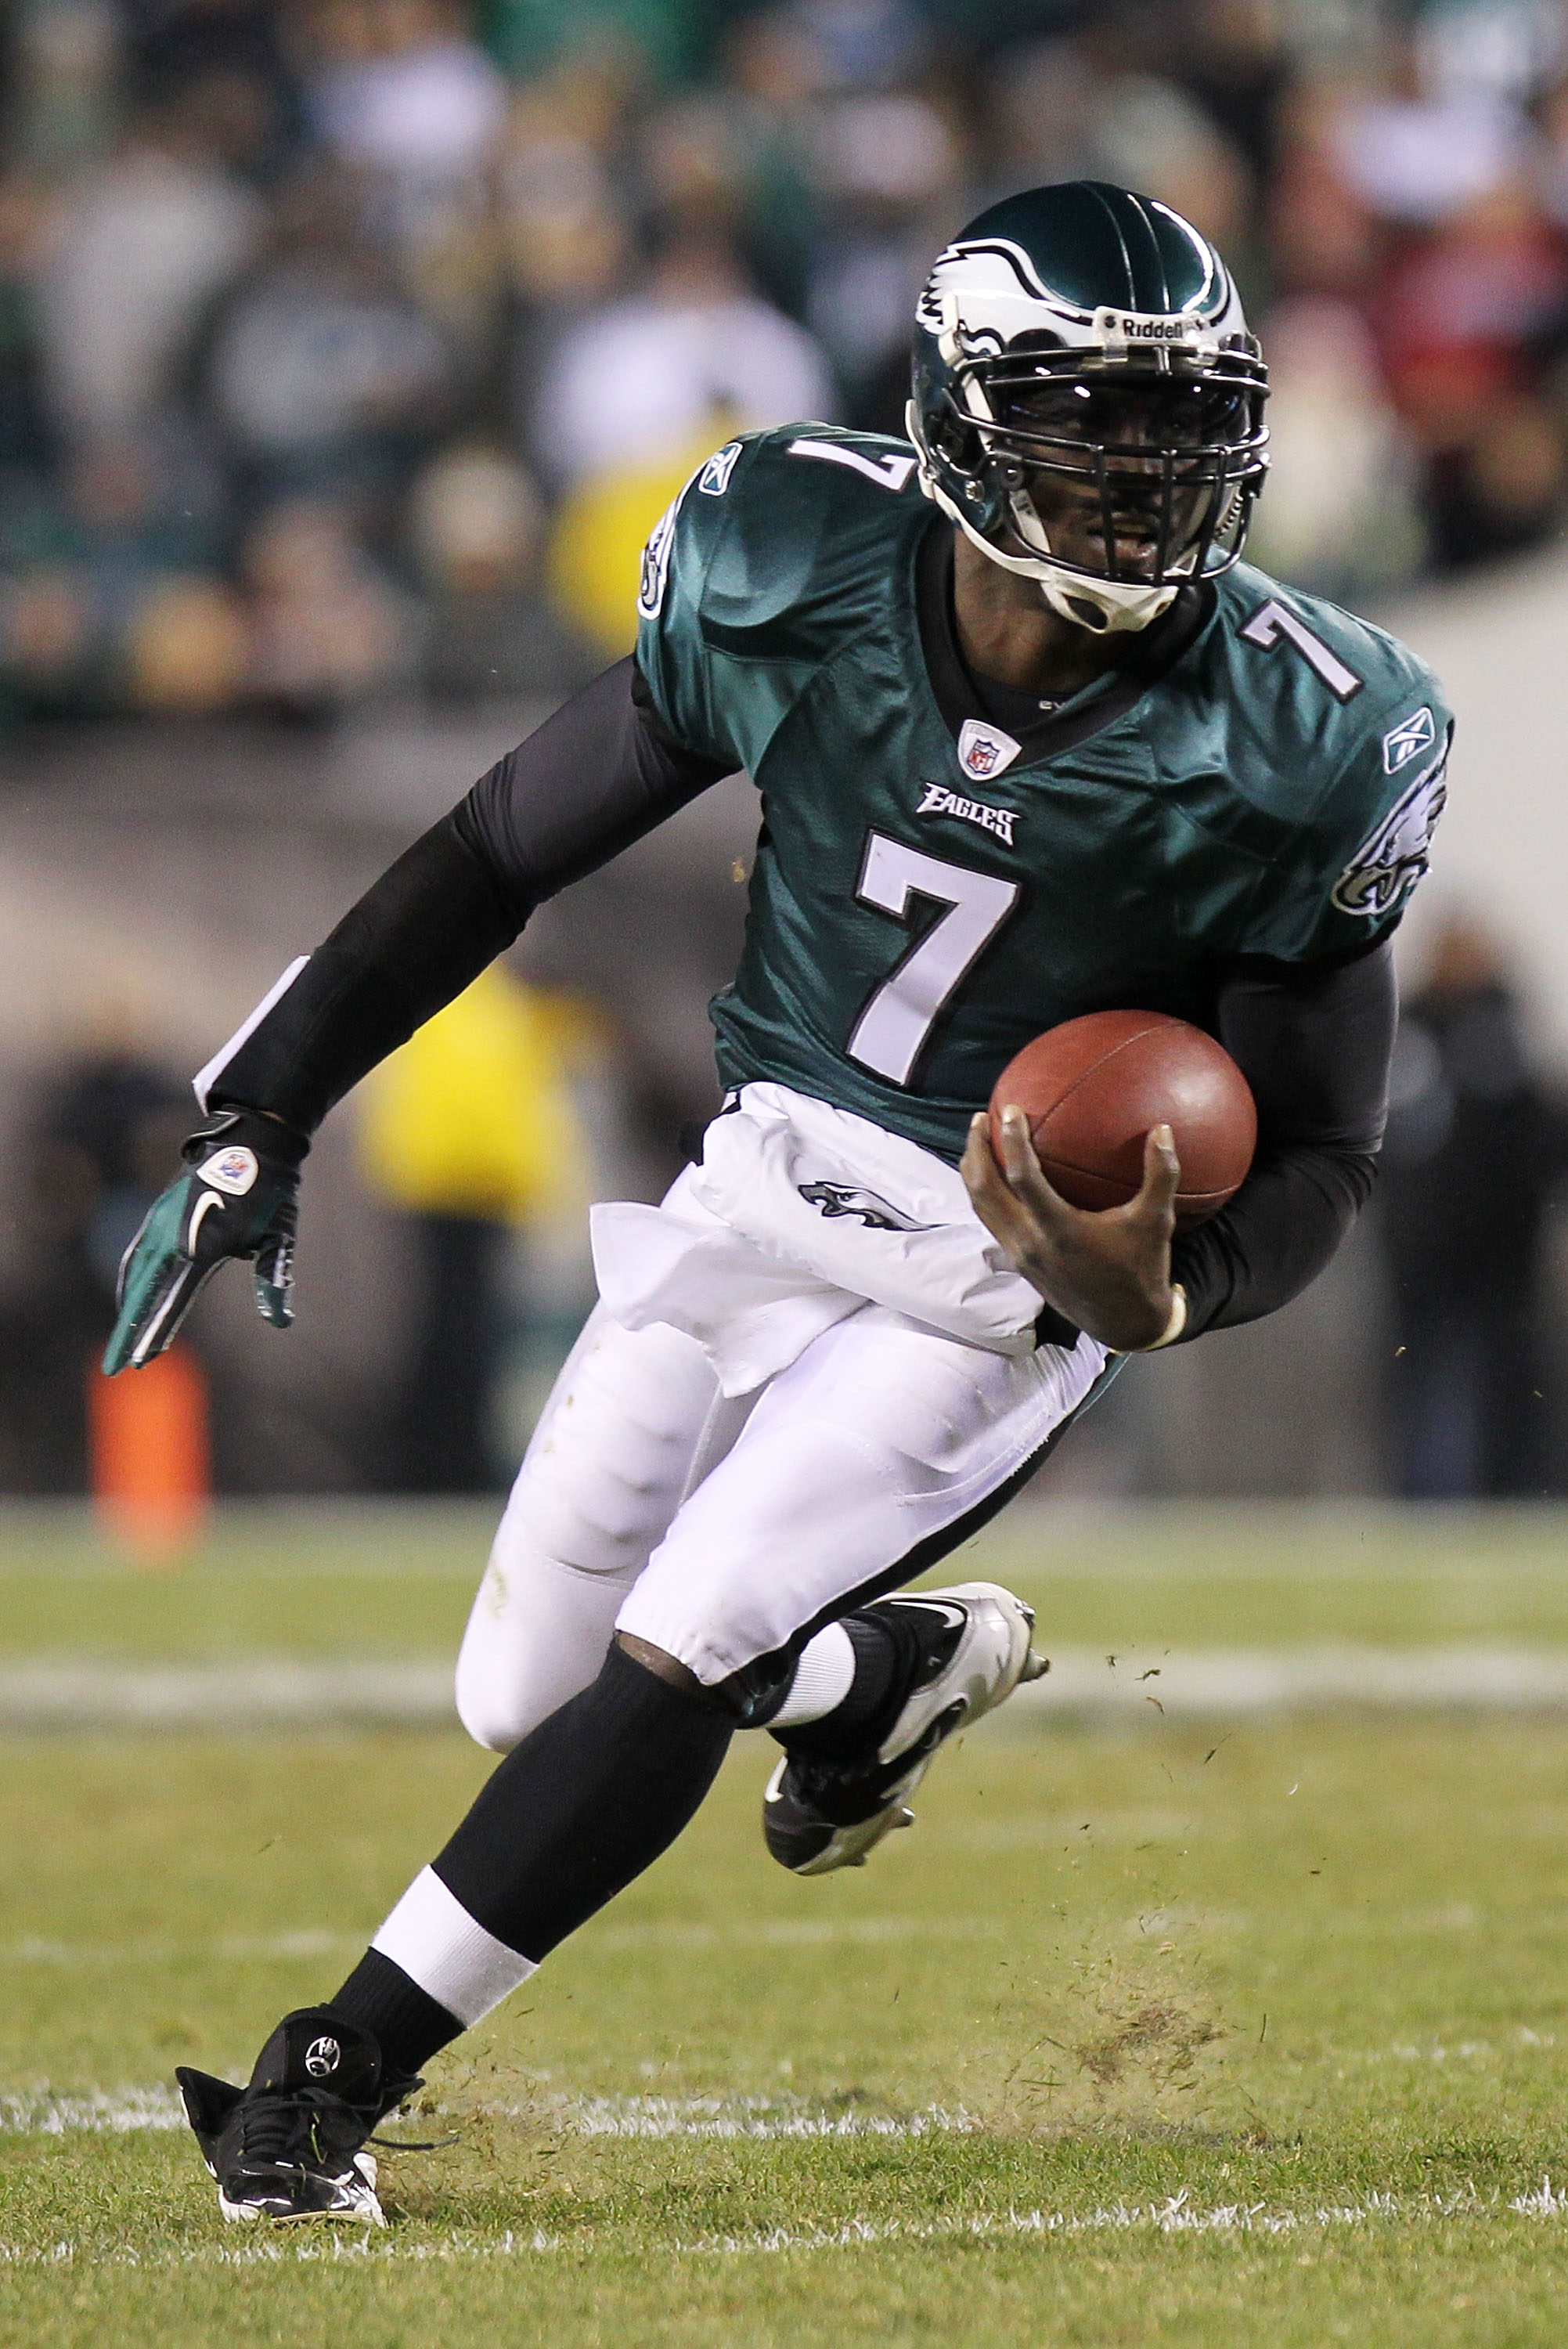 PHILADELPHIA, PA - NOVEMBER 21:  Michael Vick #7 of the Philadelphia Eagles runs down field against the New York Giants at Lincoln Financial Field on November 21, 2010 in Philadelphia, Pennsylvania.  (Photo by Nick Laham/Getty Images)